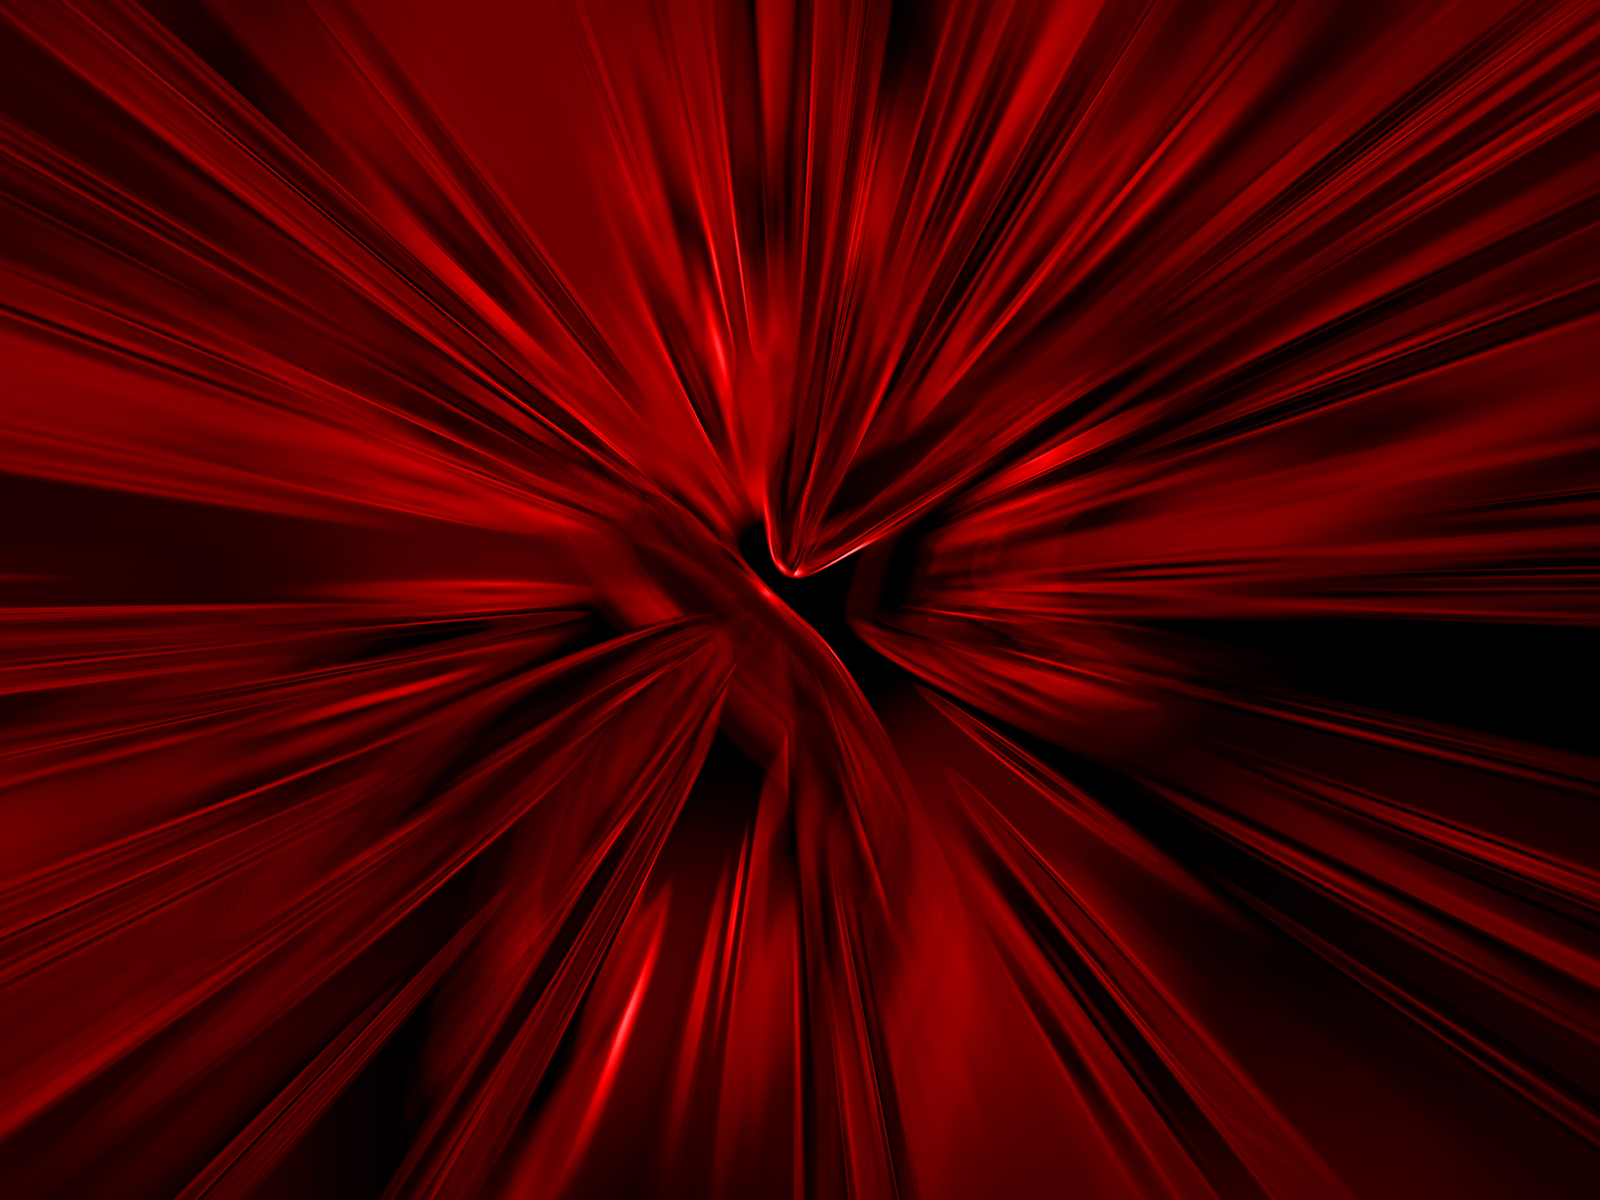 Wallpaper 37 Vortex Red and Black Wallpapers 1600x1200